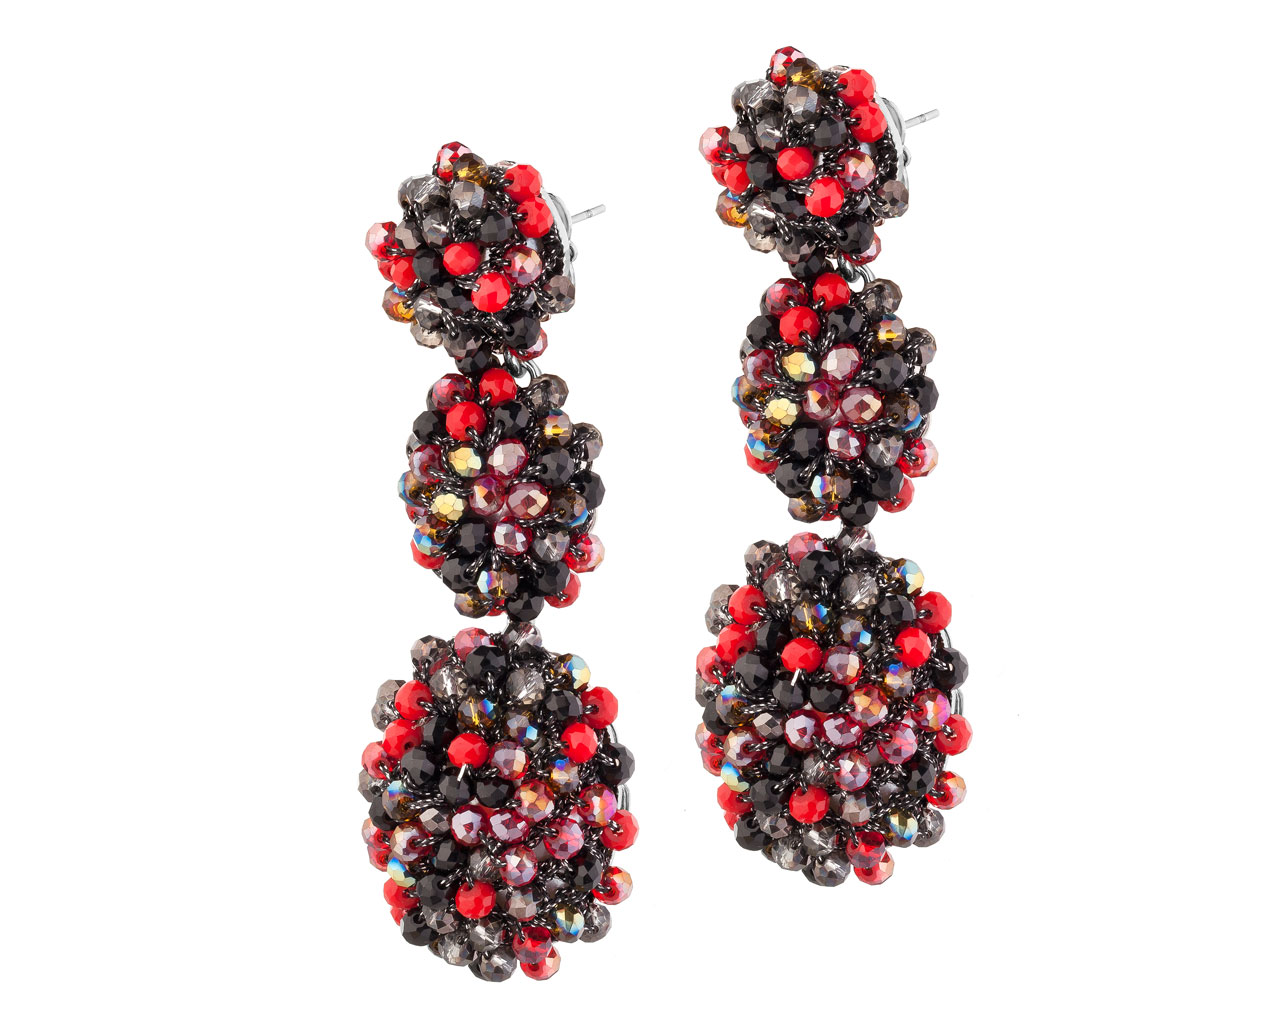 now wrap easy beaded and make wire confettitbeadearrings jewellery earrings to